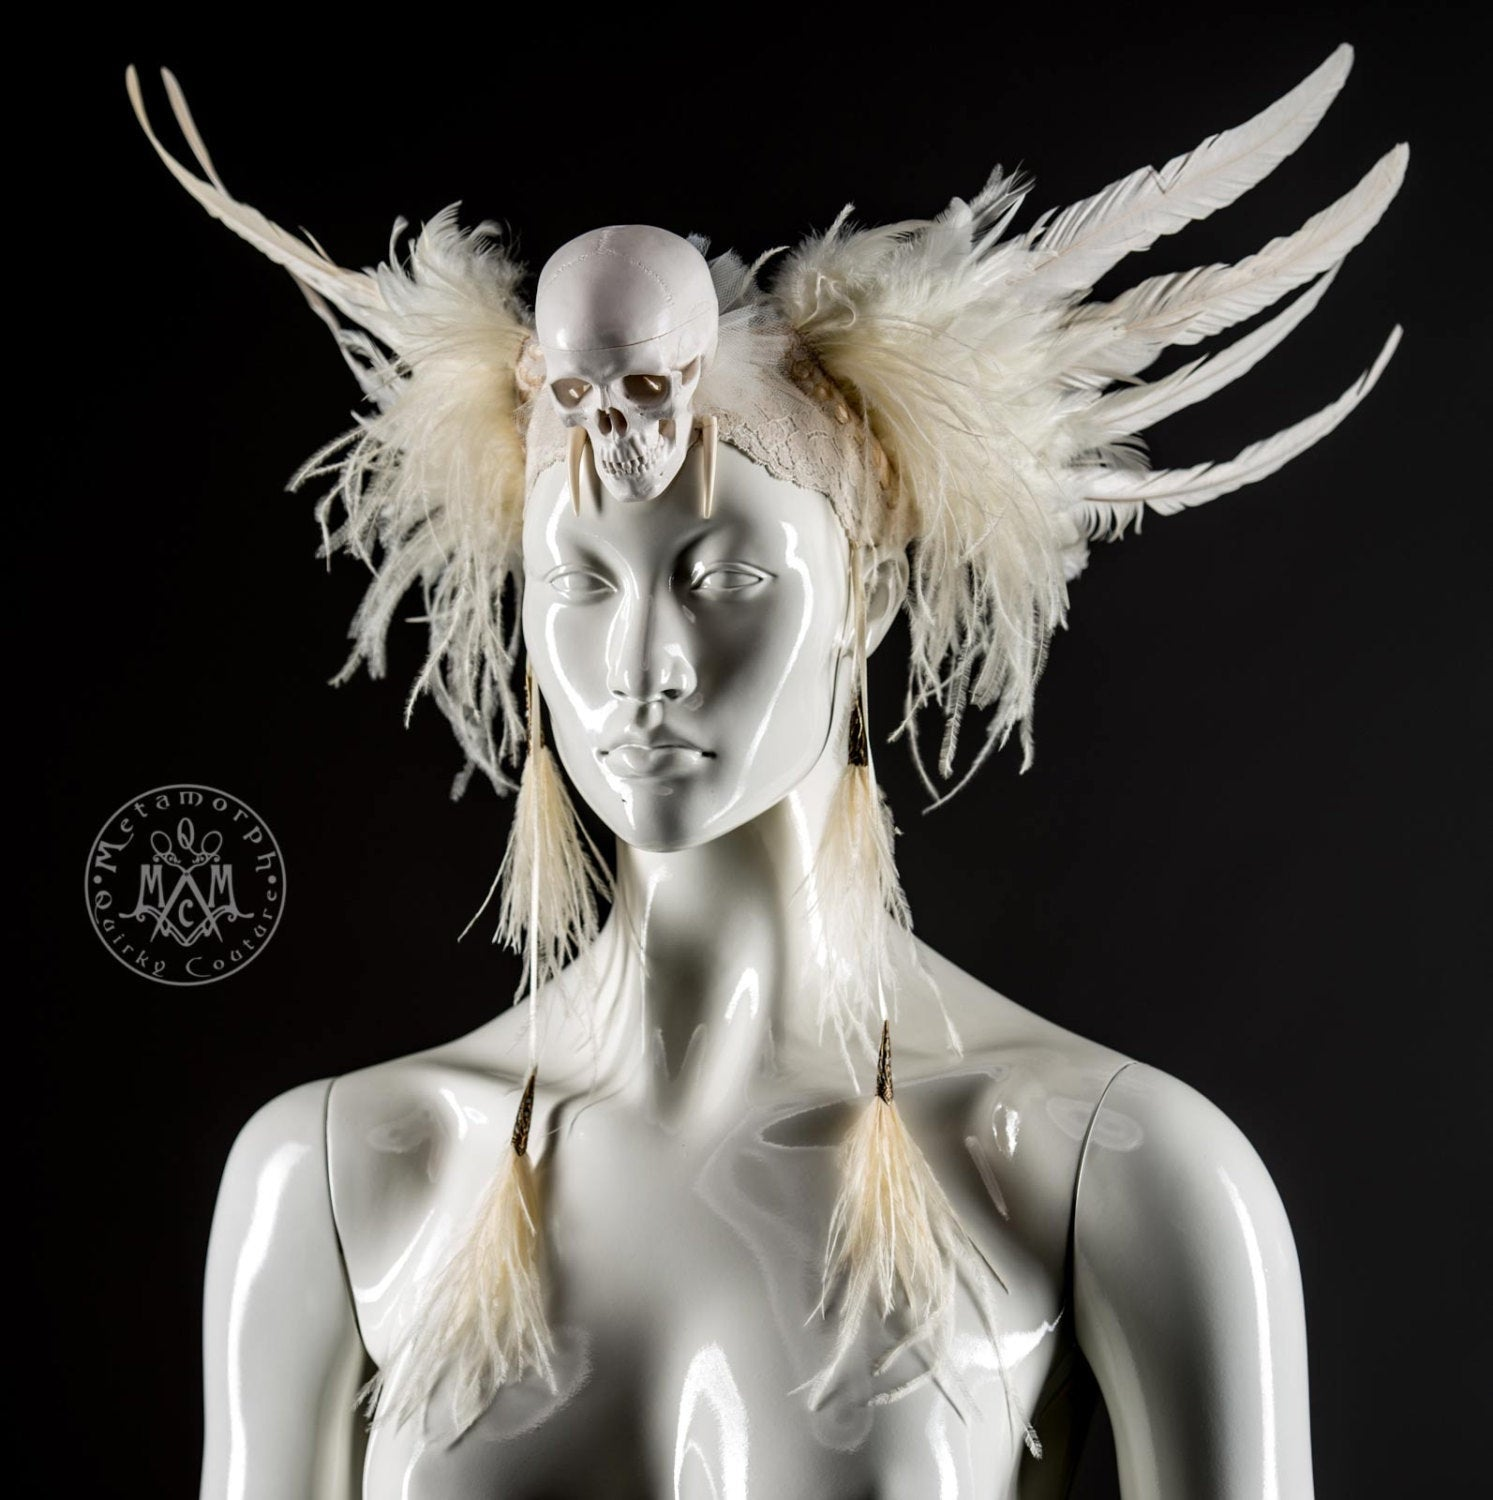 White day of the dead headpiece with human skull and feathers / Ivory rooster feather headdress with ostrich fringe / Skull headdress